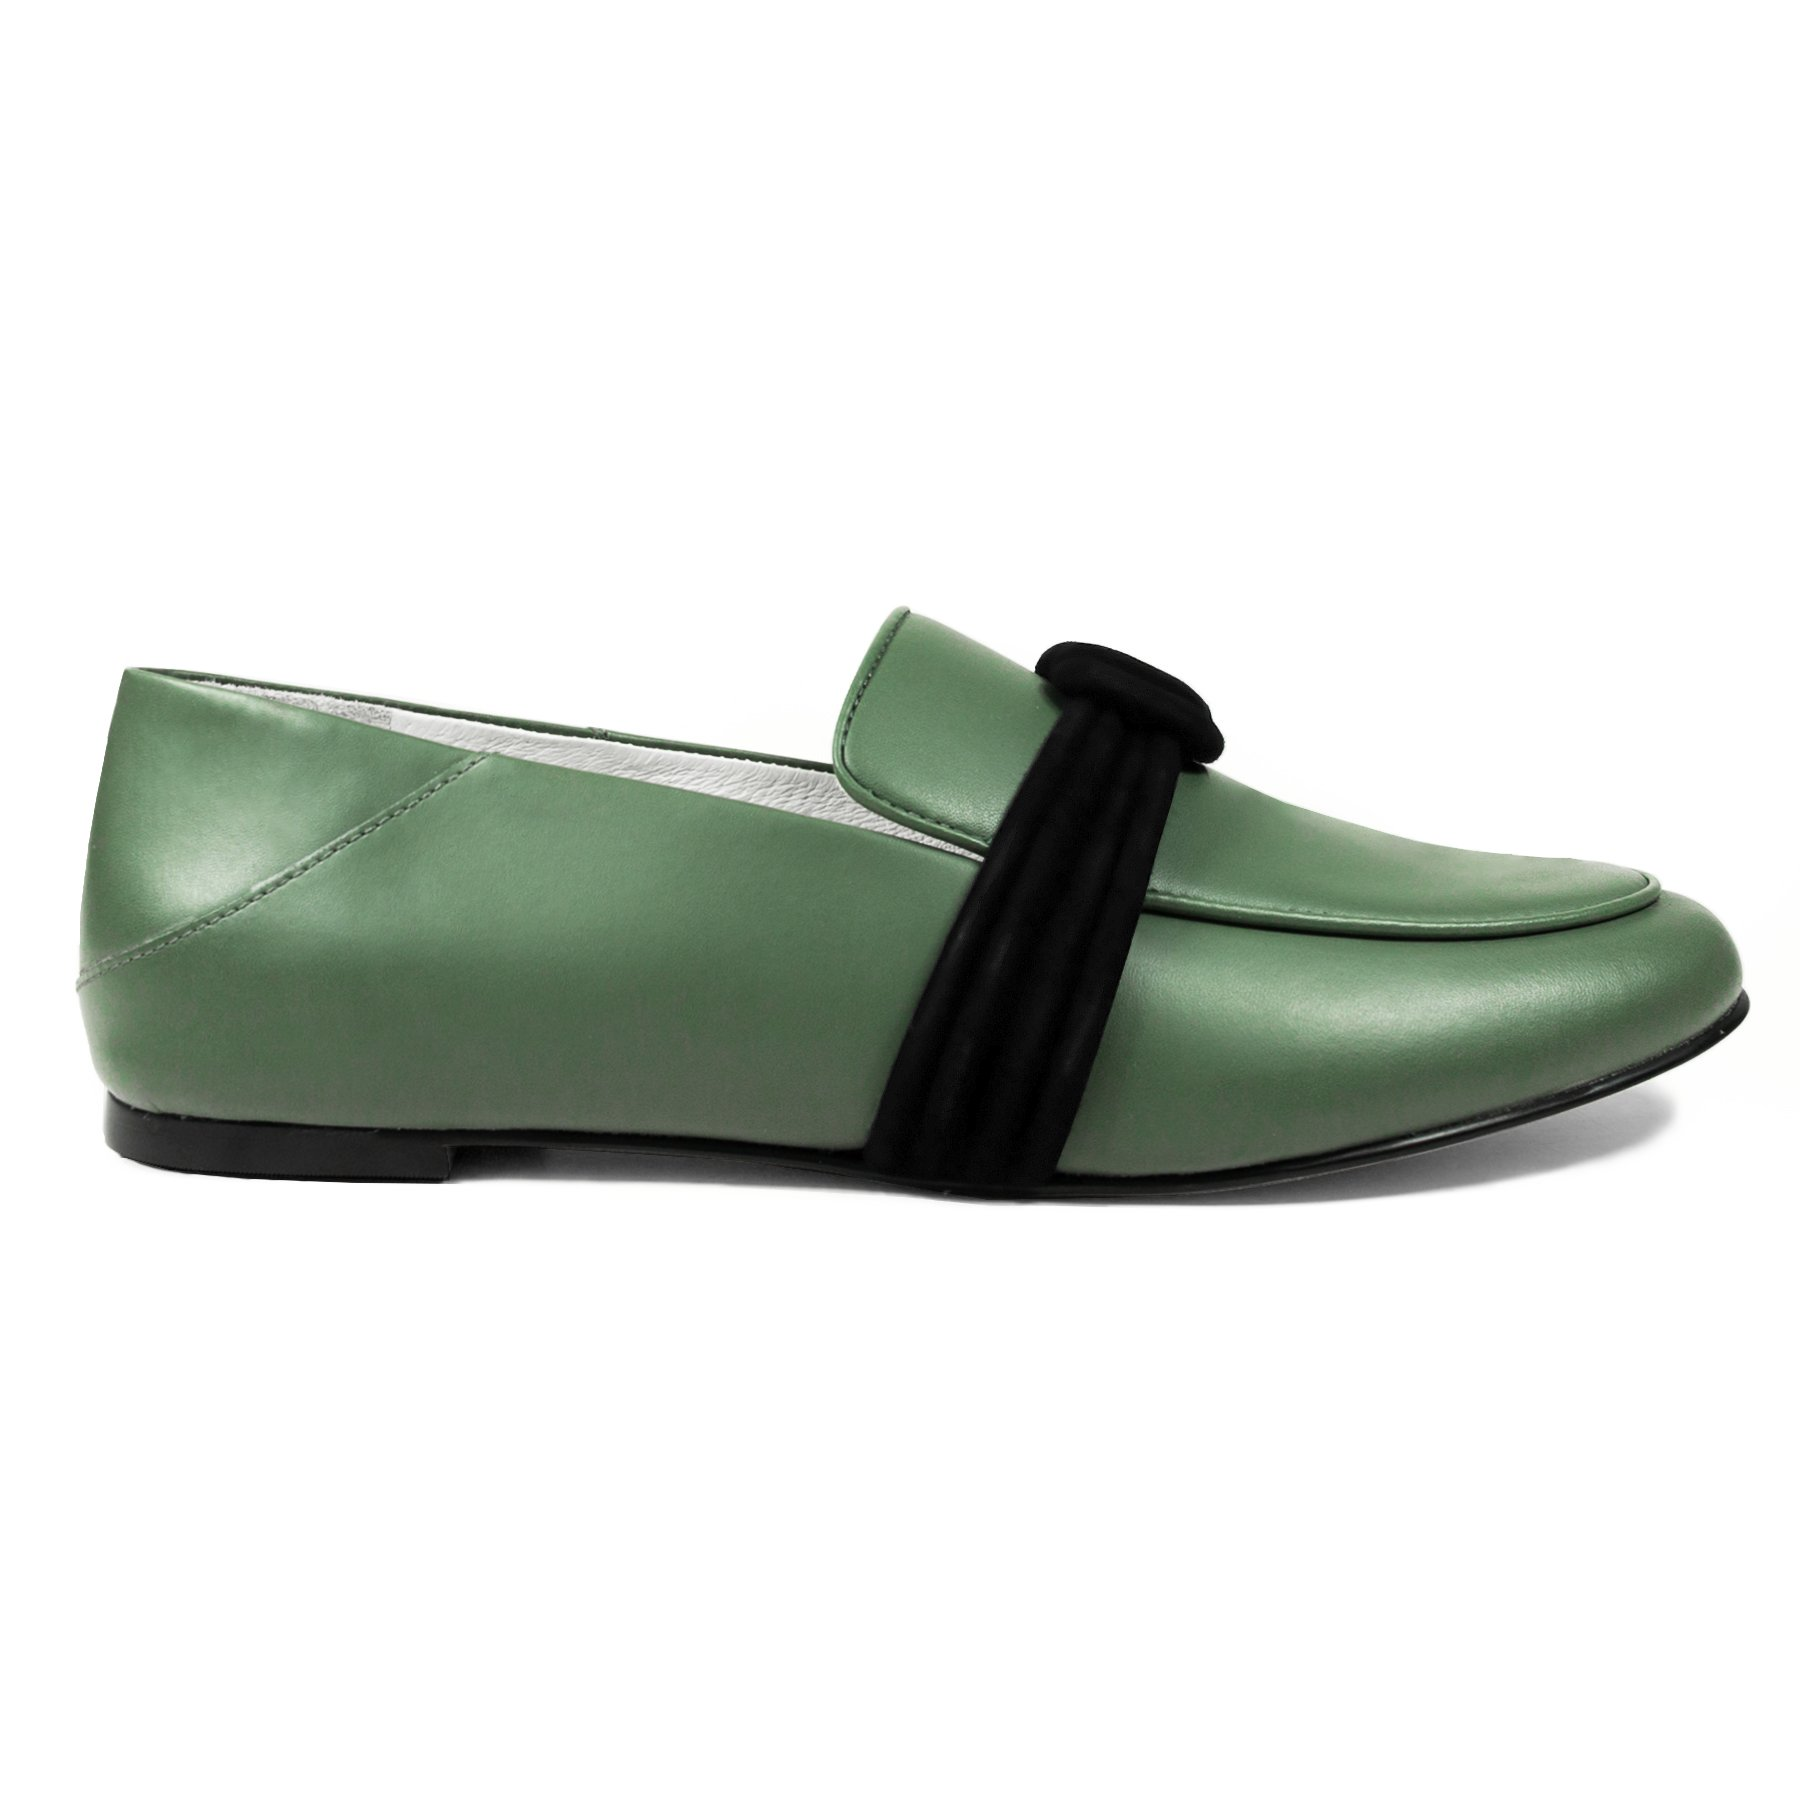 Loafer Londres Militar